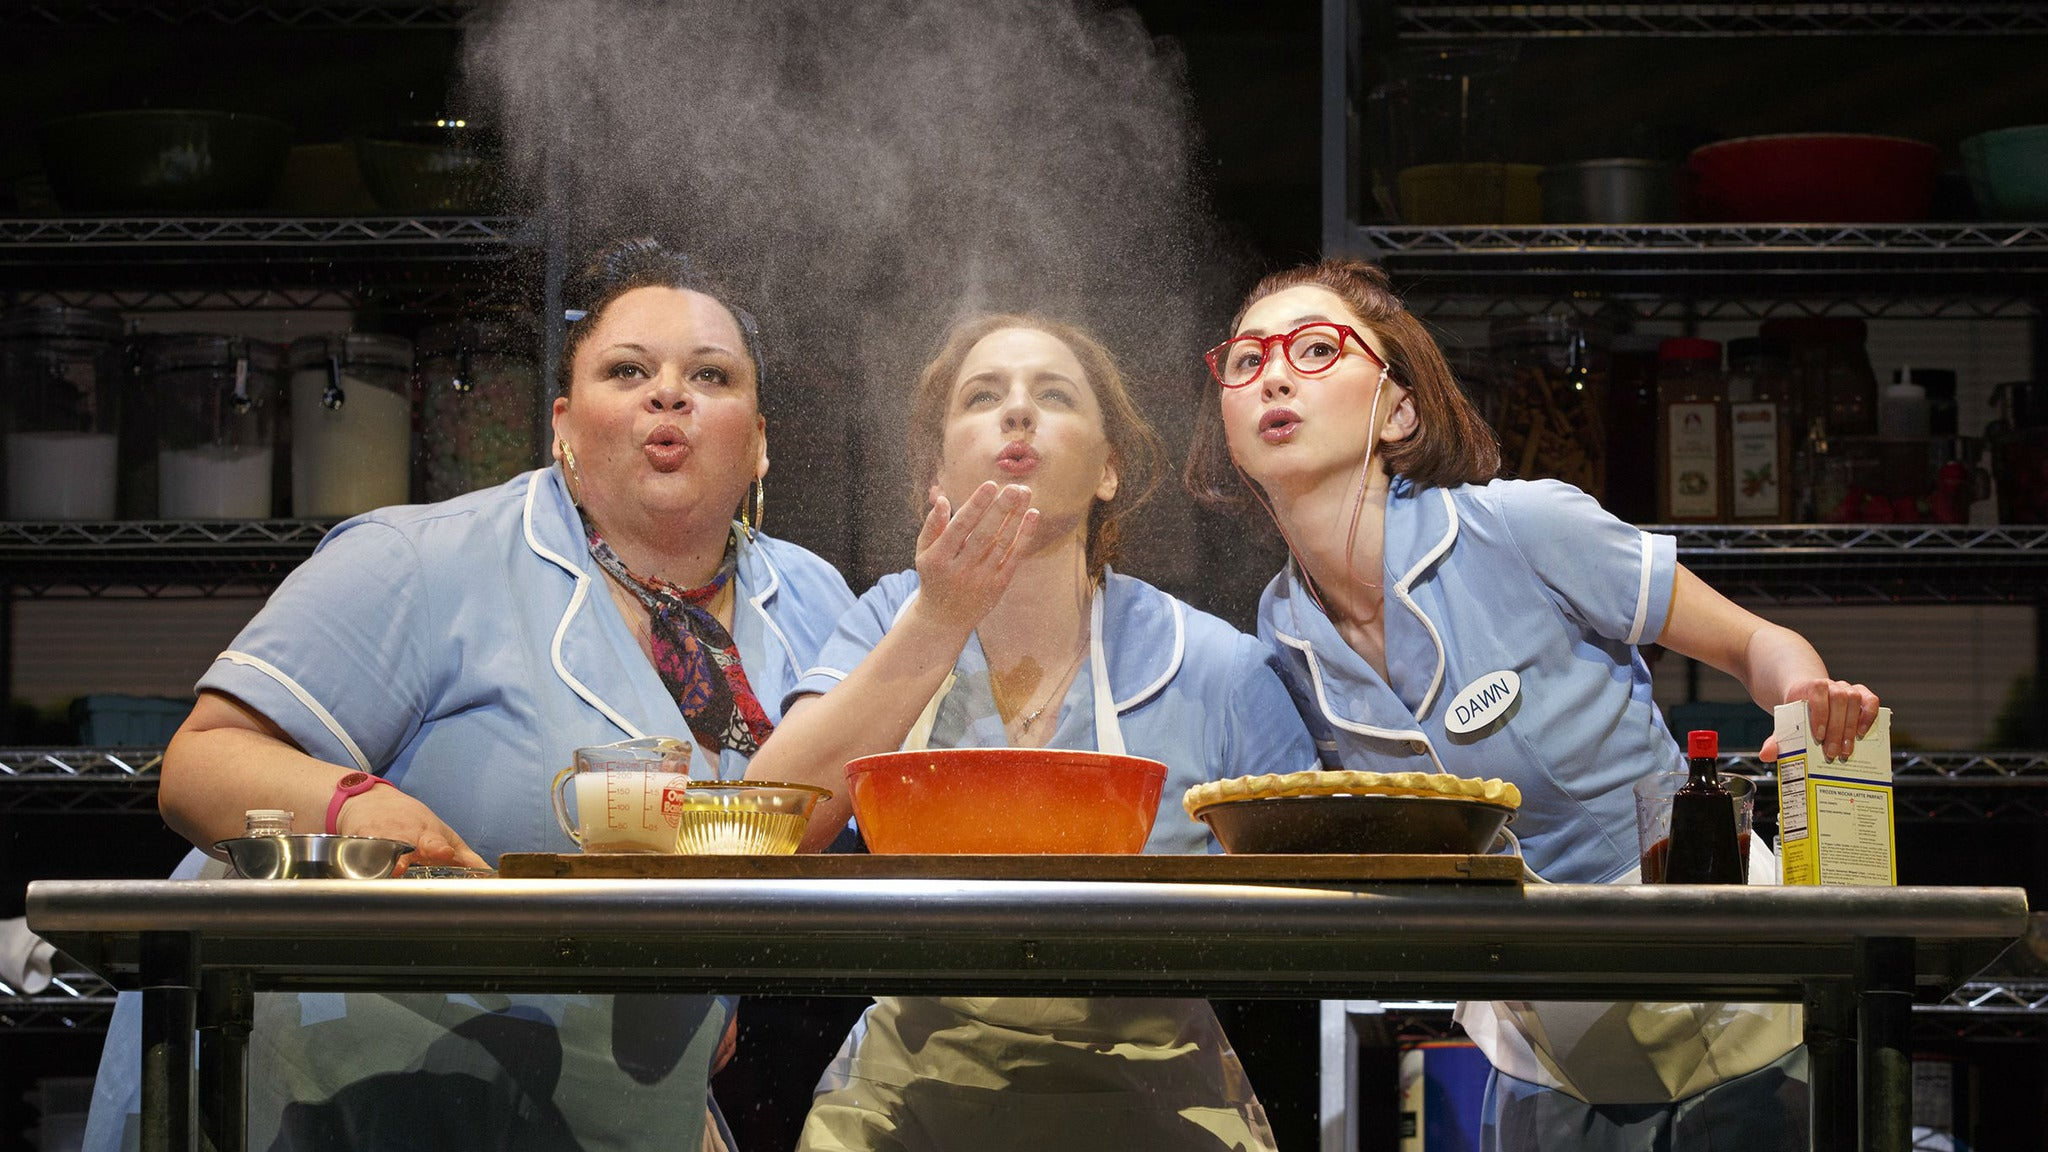 Waitress at Buell Theatre - Denver, CO 80204